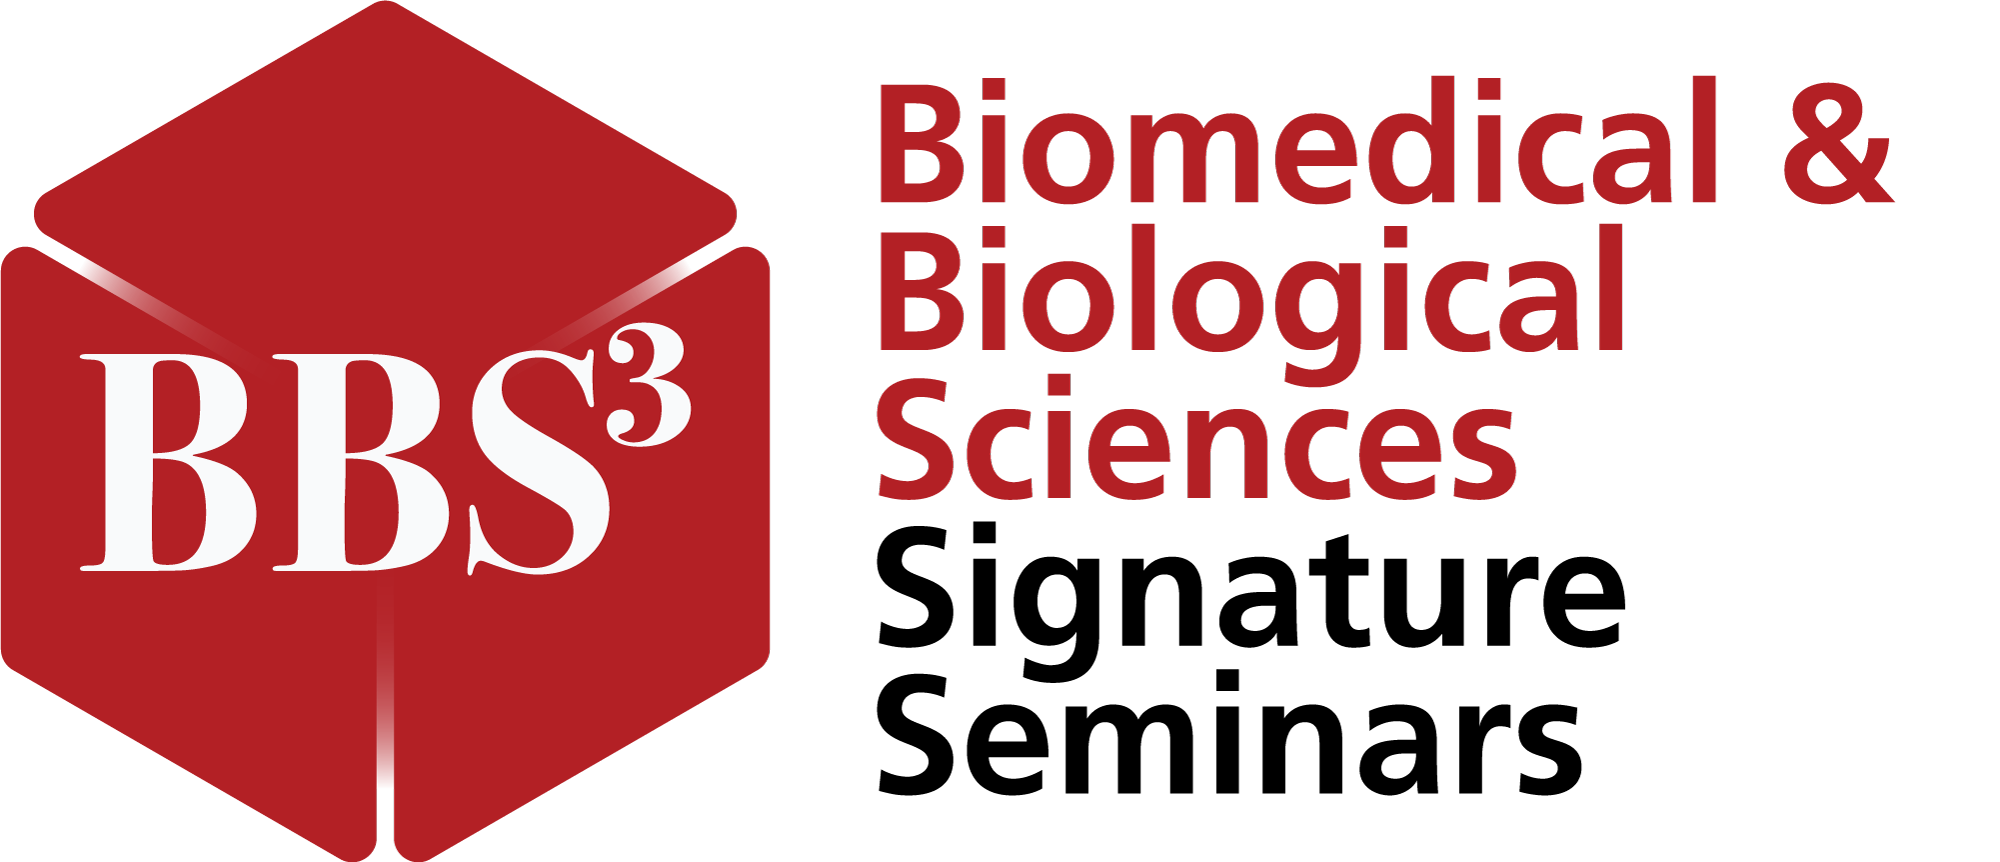 BBS3 Biomedical and Biological Sciences Signature Seminars